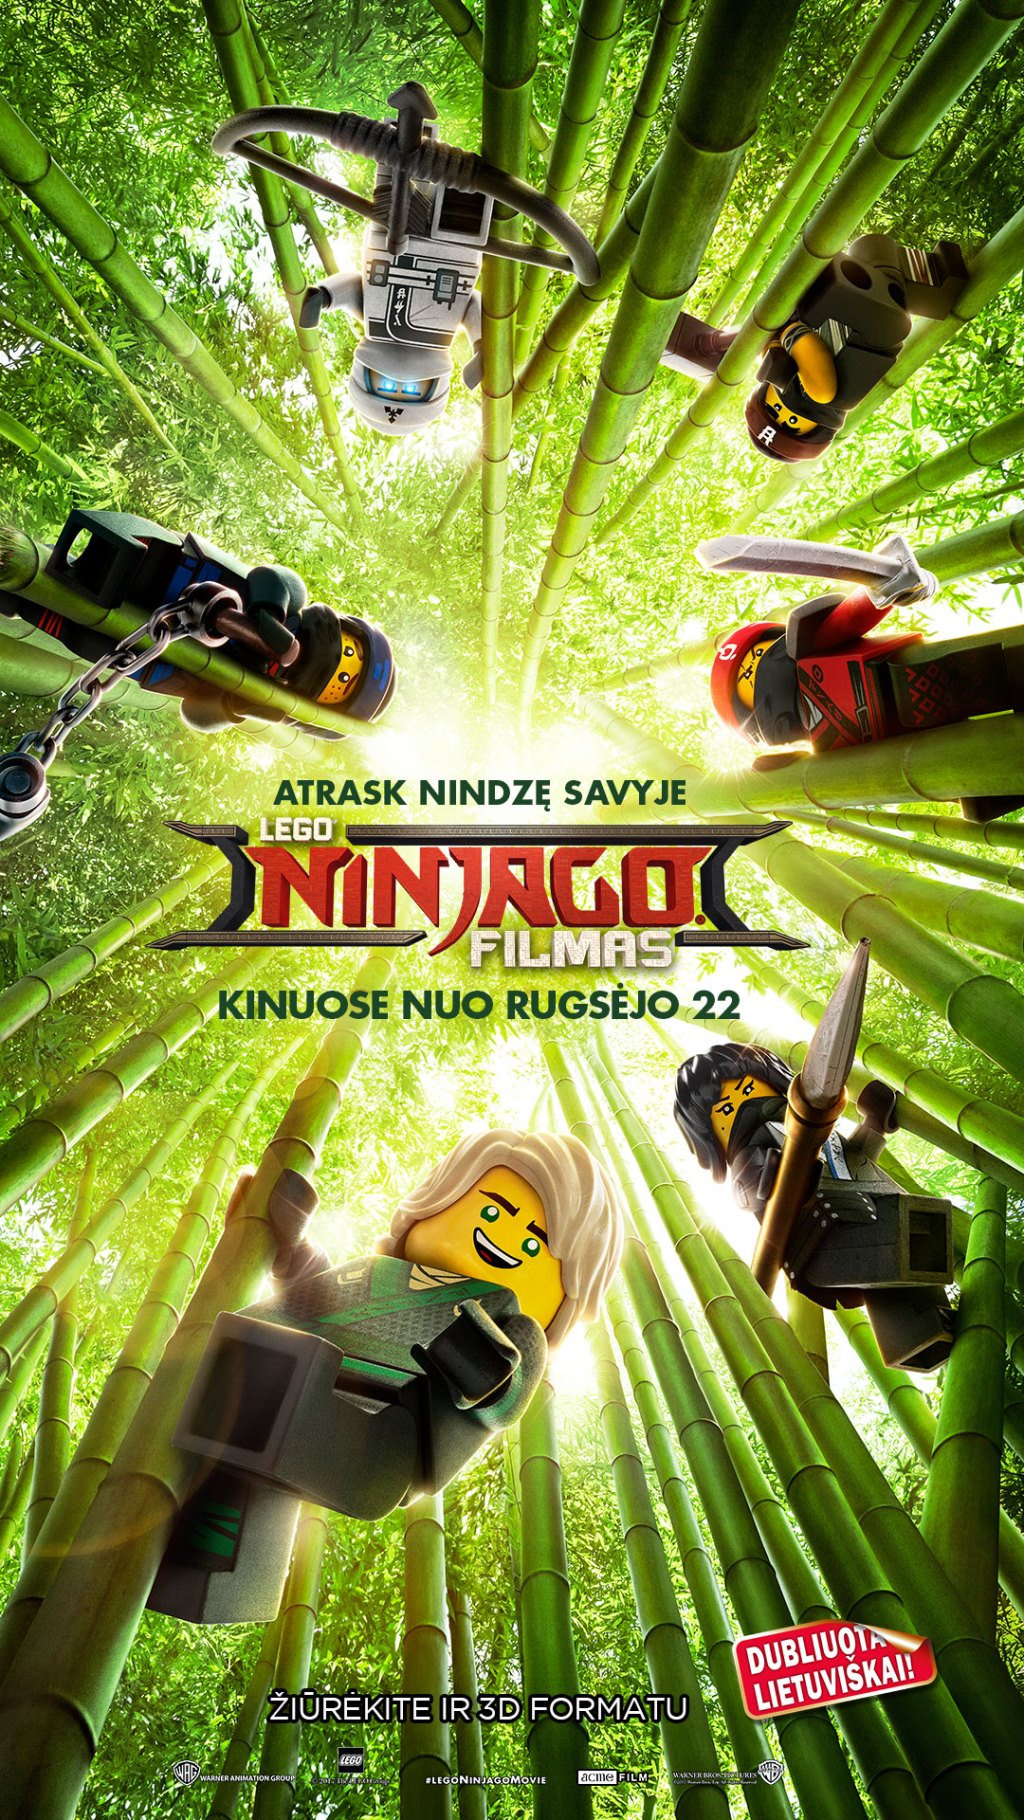 Lego Ninjago filmas (The LEGO Ninjago Movie)